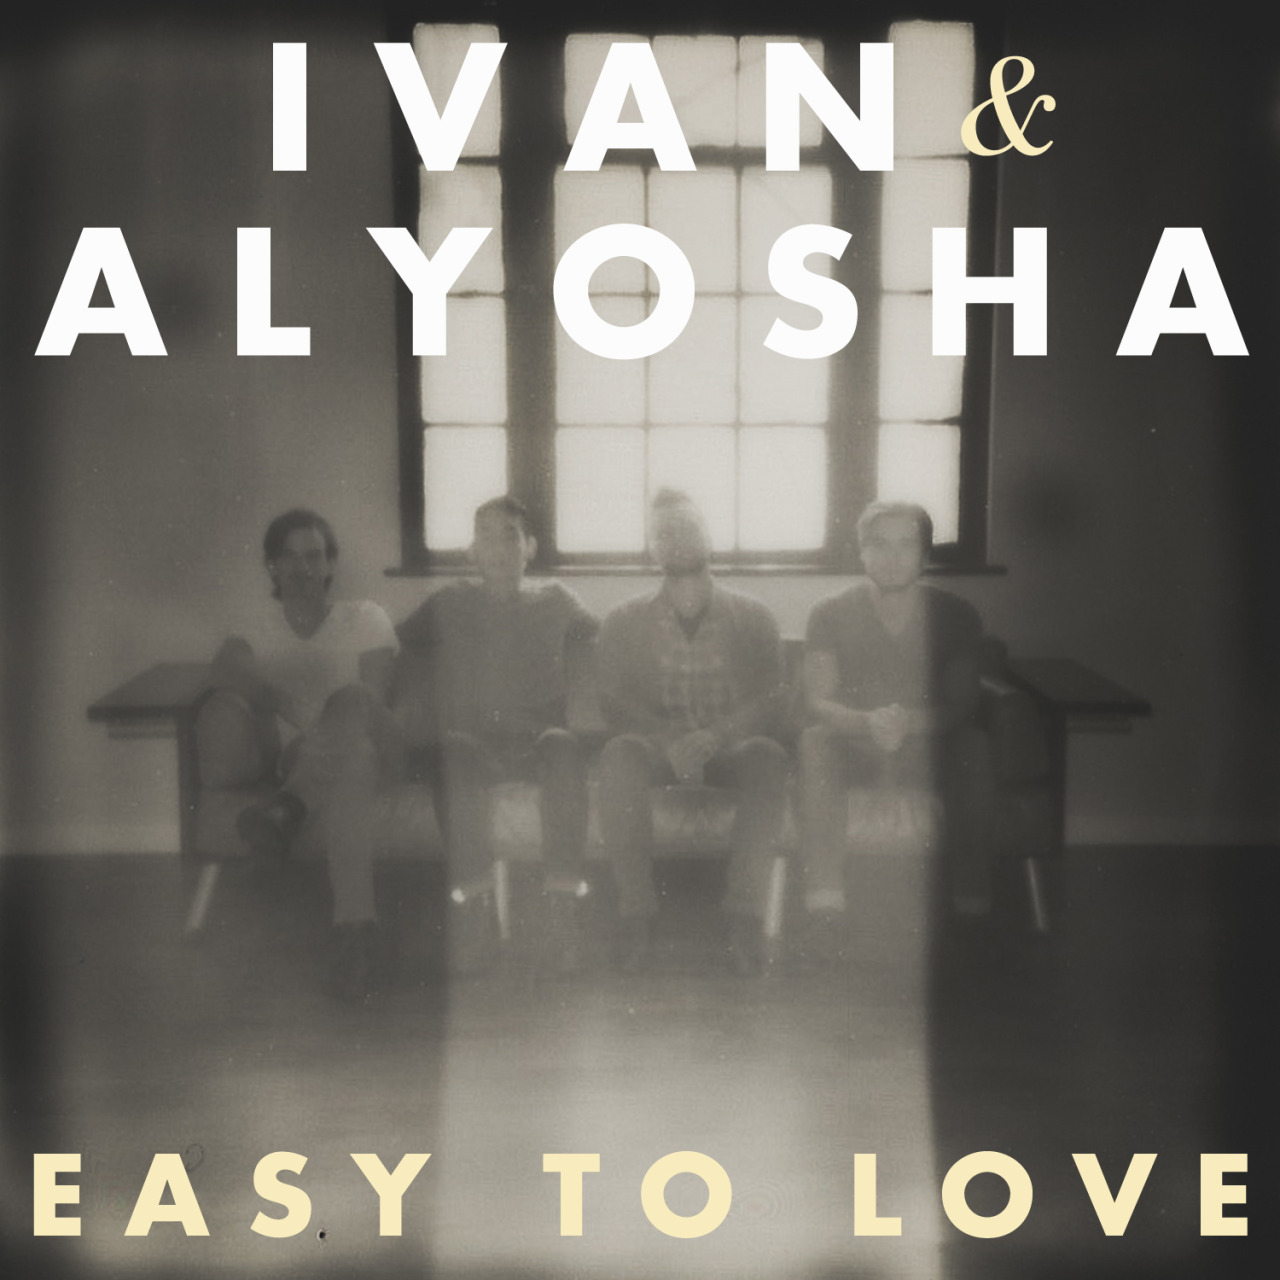 """I&A's """"Easy To Love"""" is Starbucks Pick Of The Week!  Download it here,  http://www.starbucks.com/MobileNotification/GetiTunesRedirect?assetID=247"""